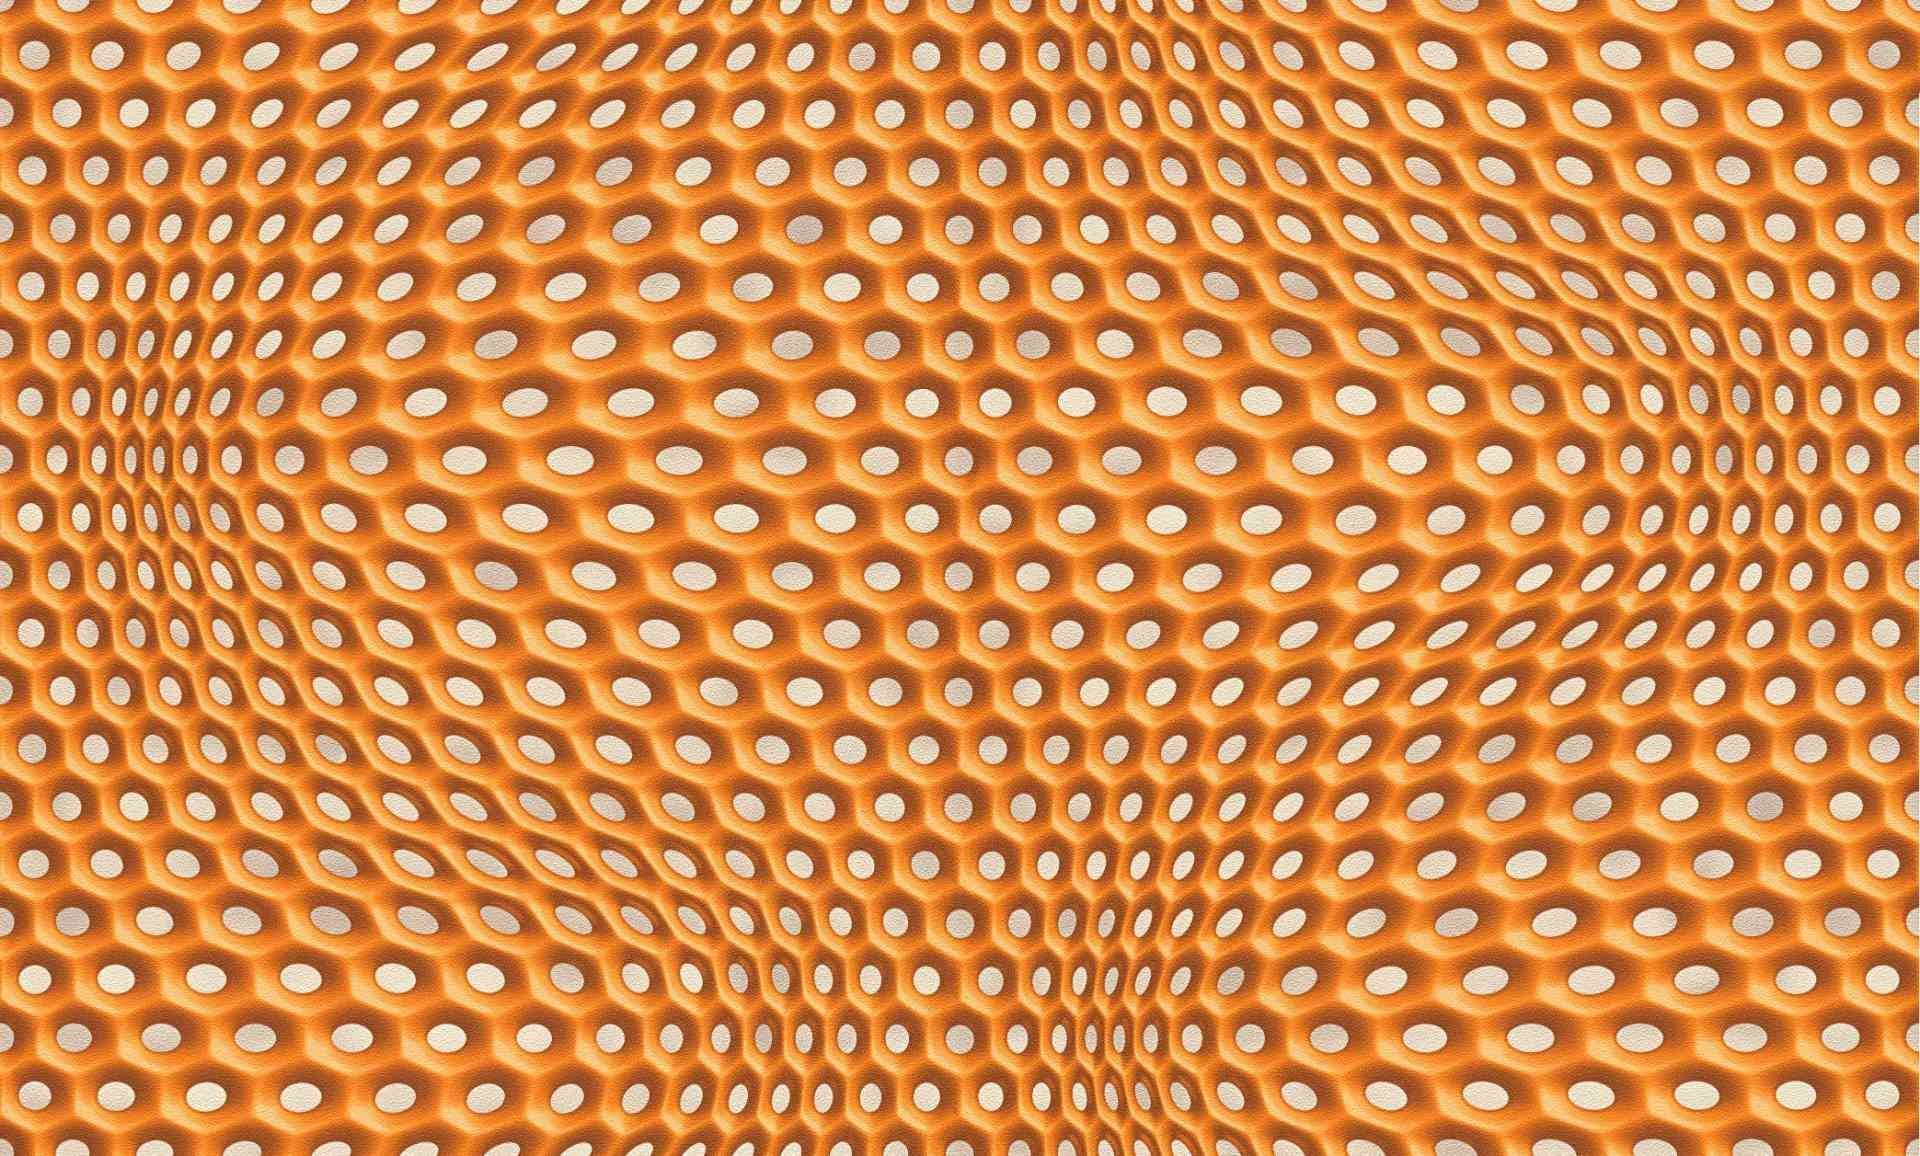 harmony in motion young and contemporary 3d designs wall paper orange grey metallic 327074